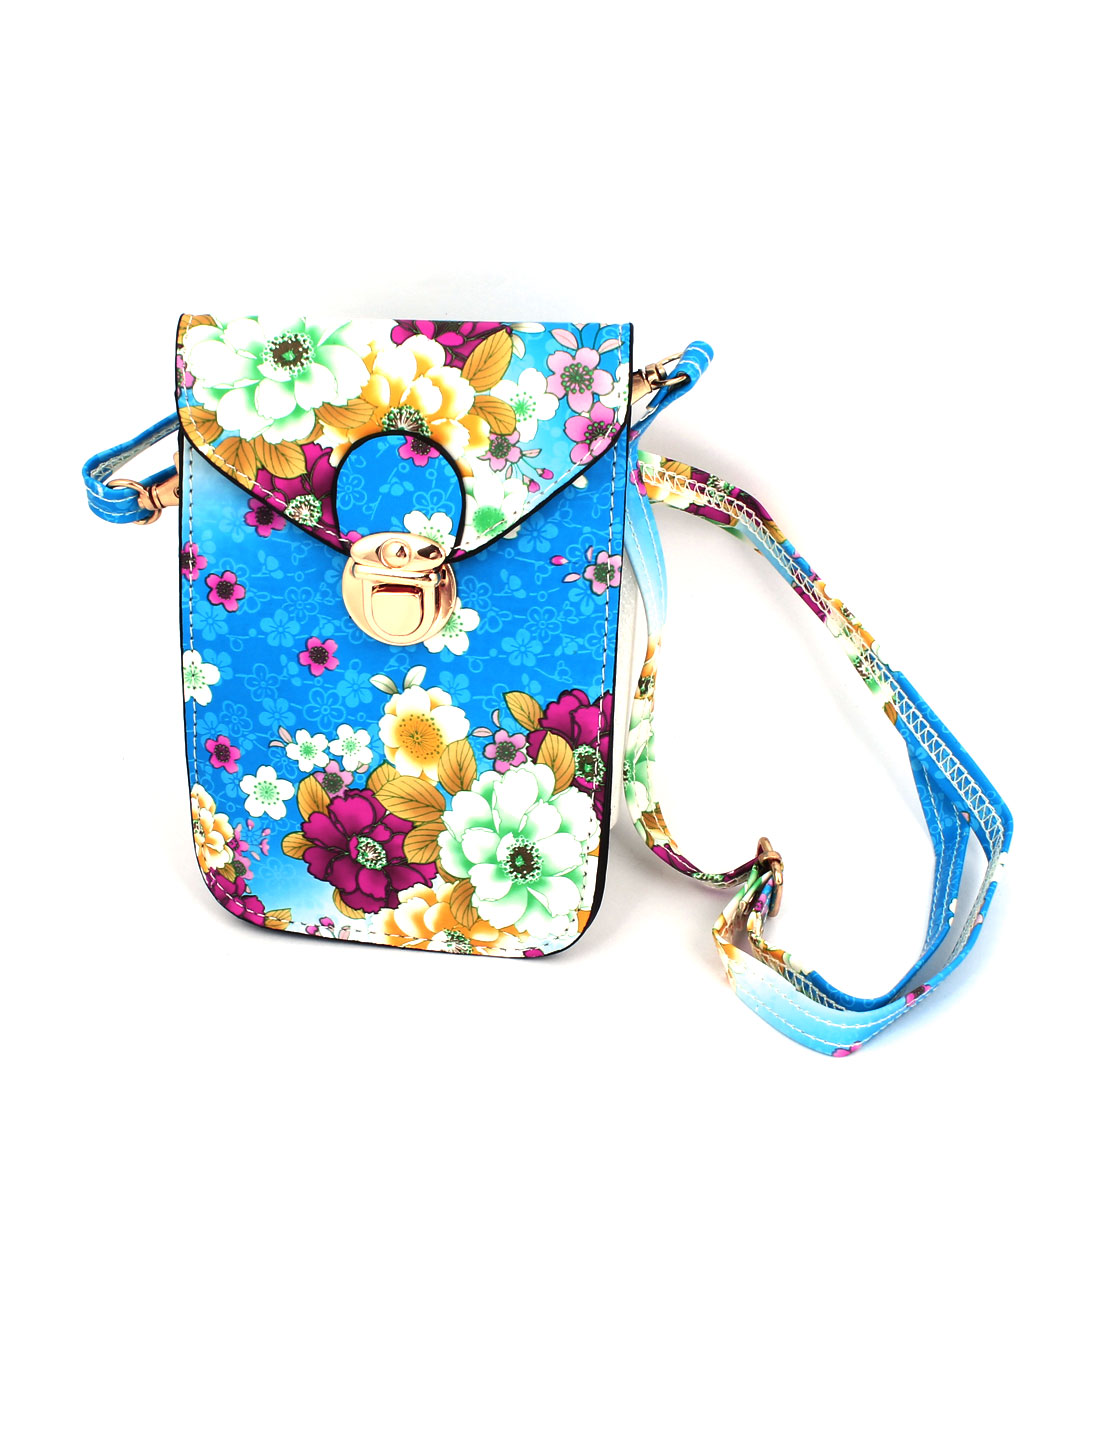 Lady Faux Leather 2 Compartments Flower Printed Push Lock Closure Cross-Body Bag Purse Blue